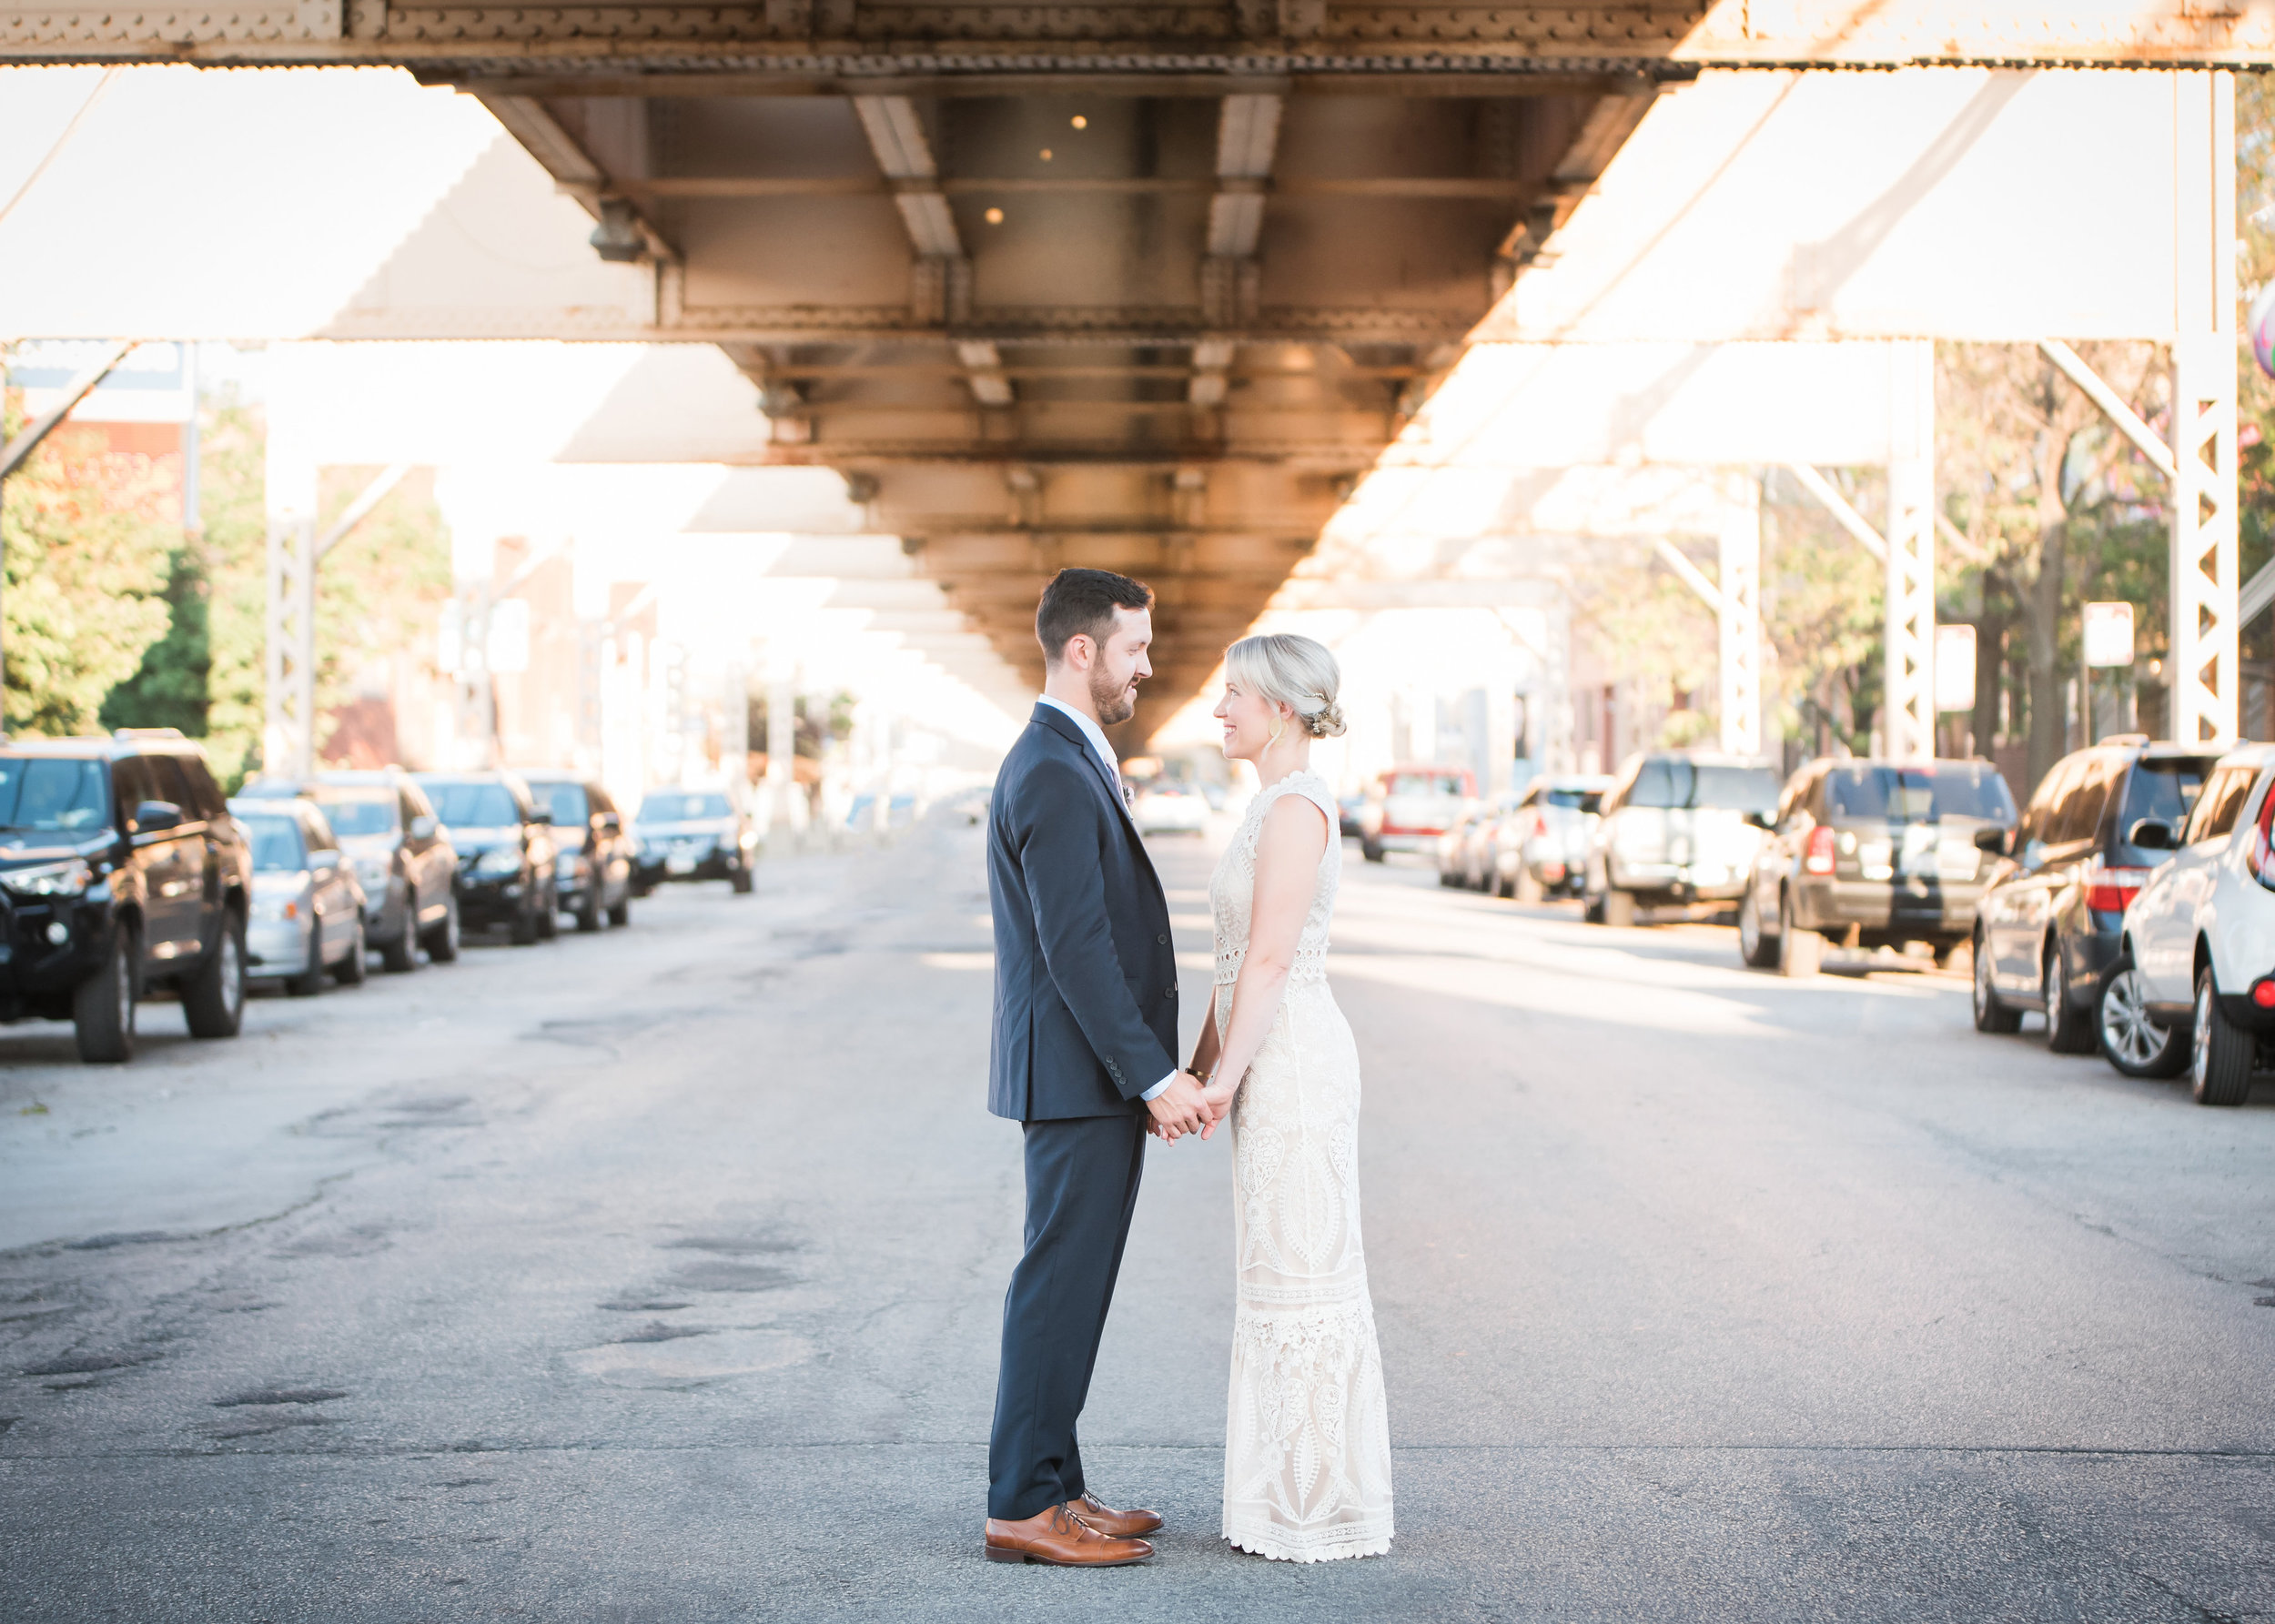 Traditional, yet creative West Loop Chicago wedding captured by Inspired Eye Photography. See more creative wedding ideas at CHItheeWED.com!